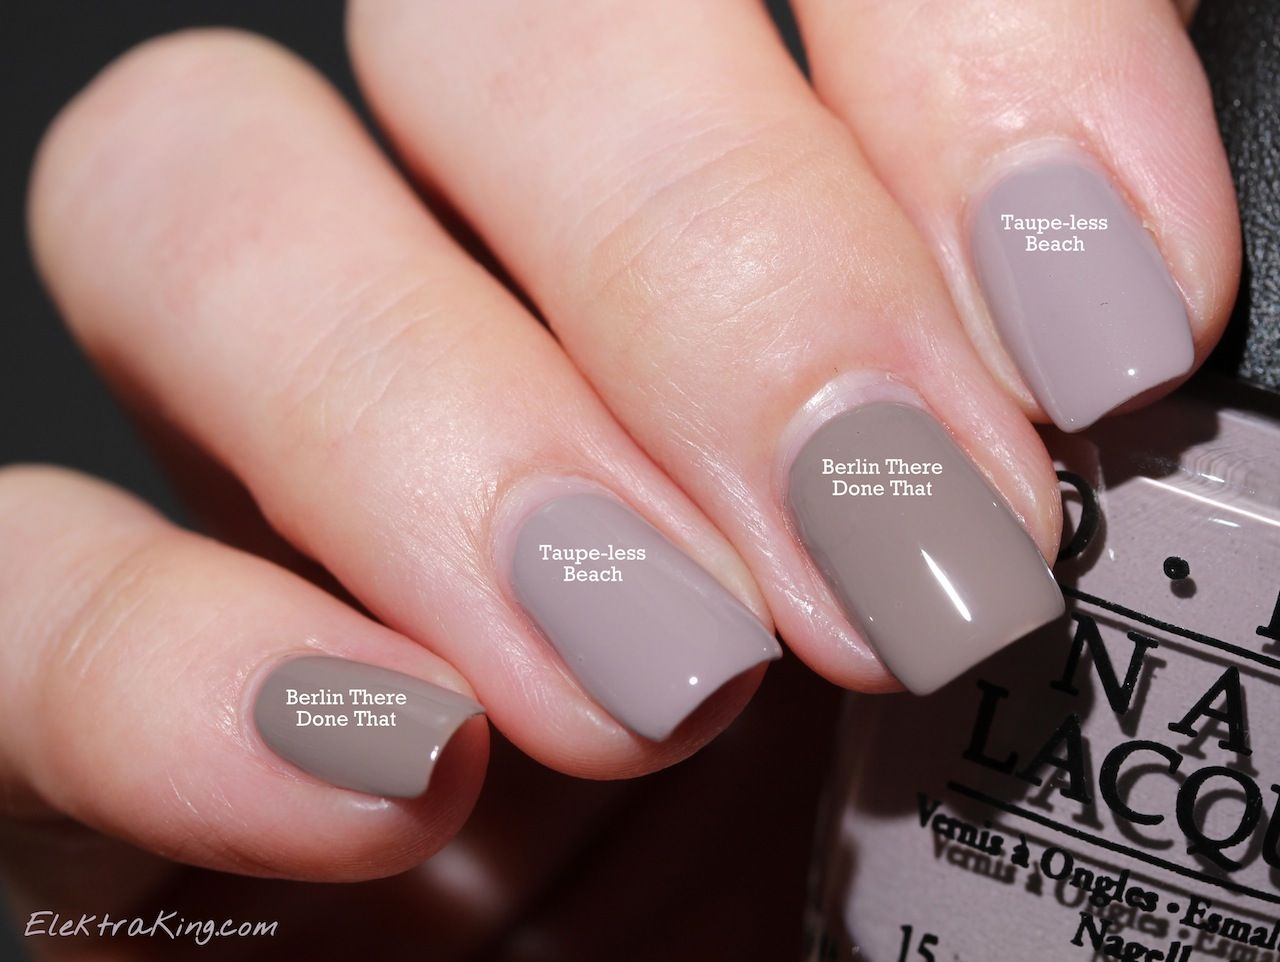 OPI Taupe-less Beach vs Berlin There Done That | Nailed it ...